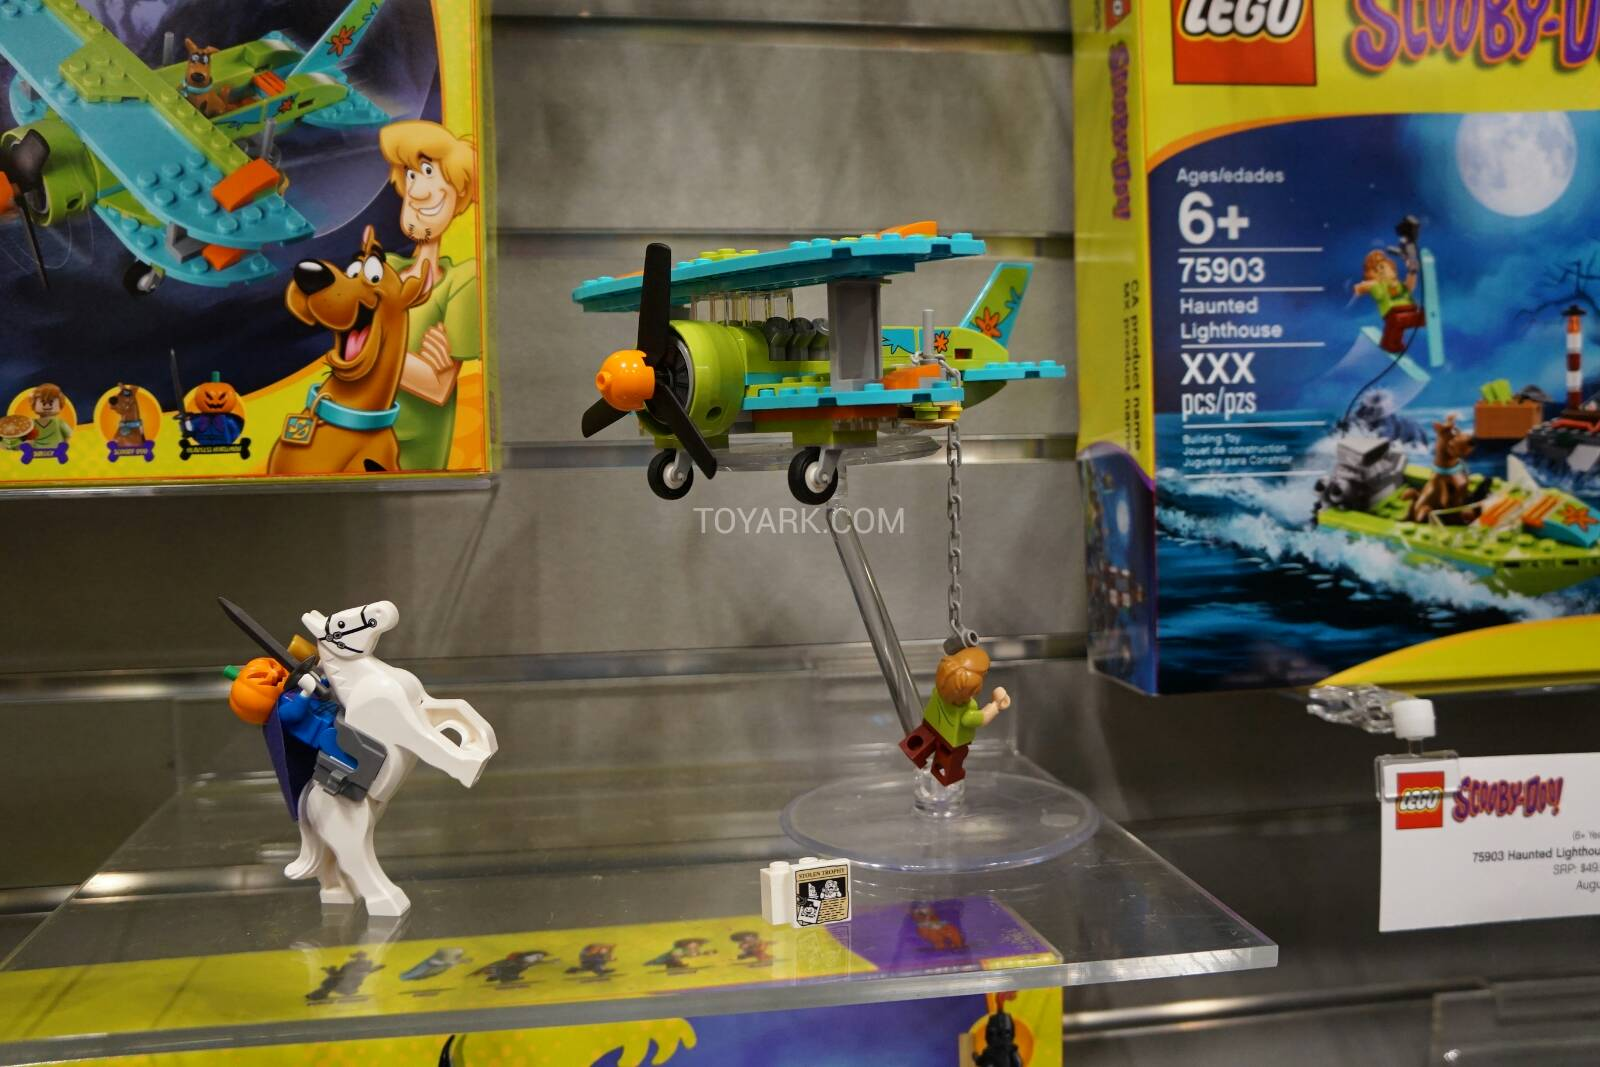 Toy-Fair-2015-LEGO-Scooby-004.jpg